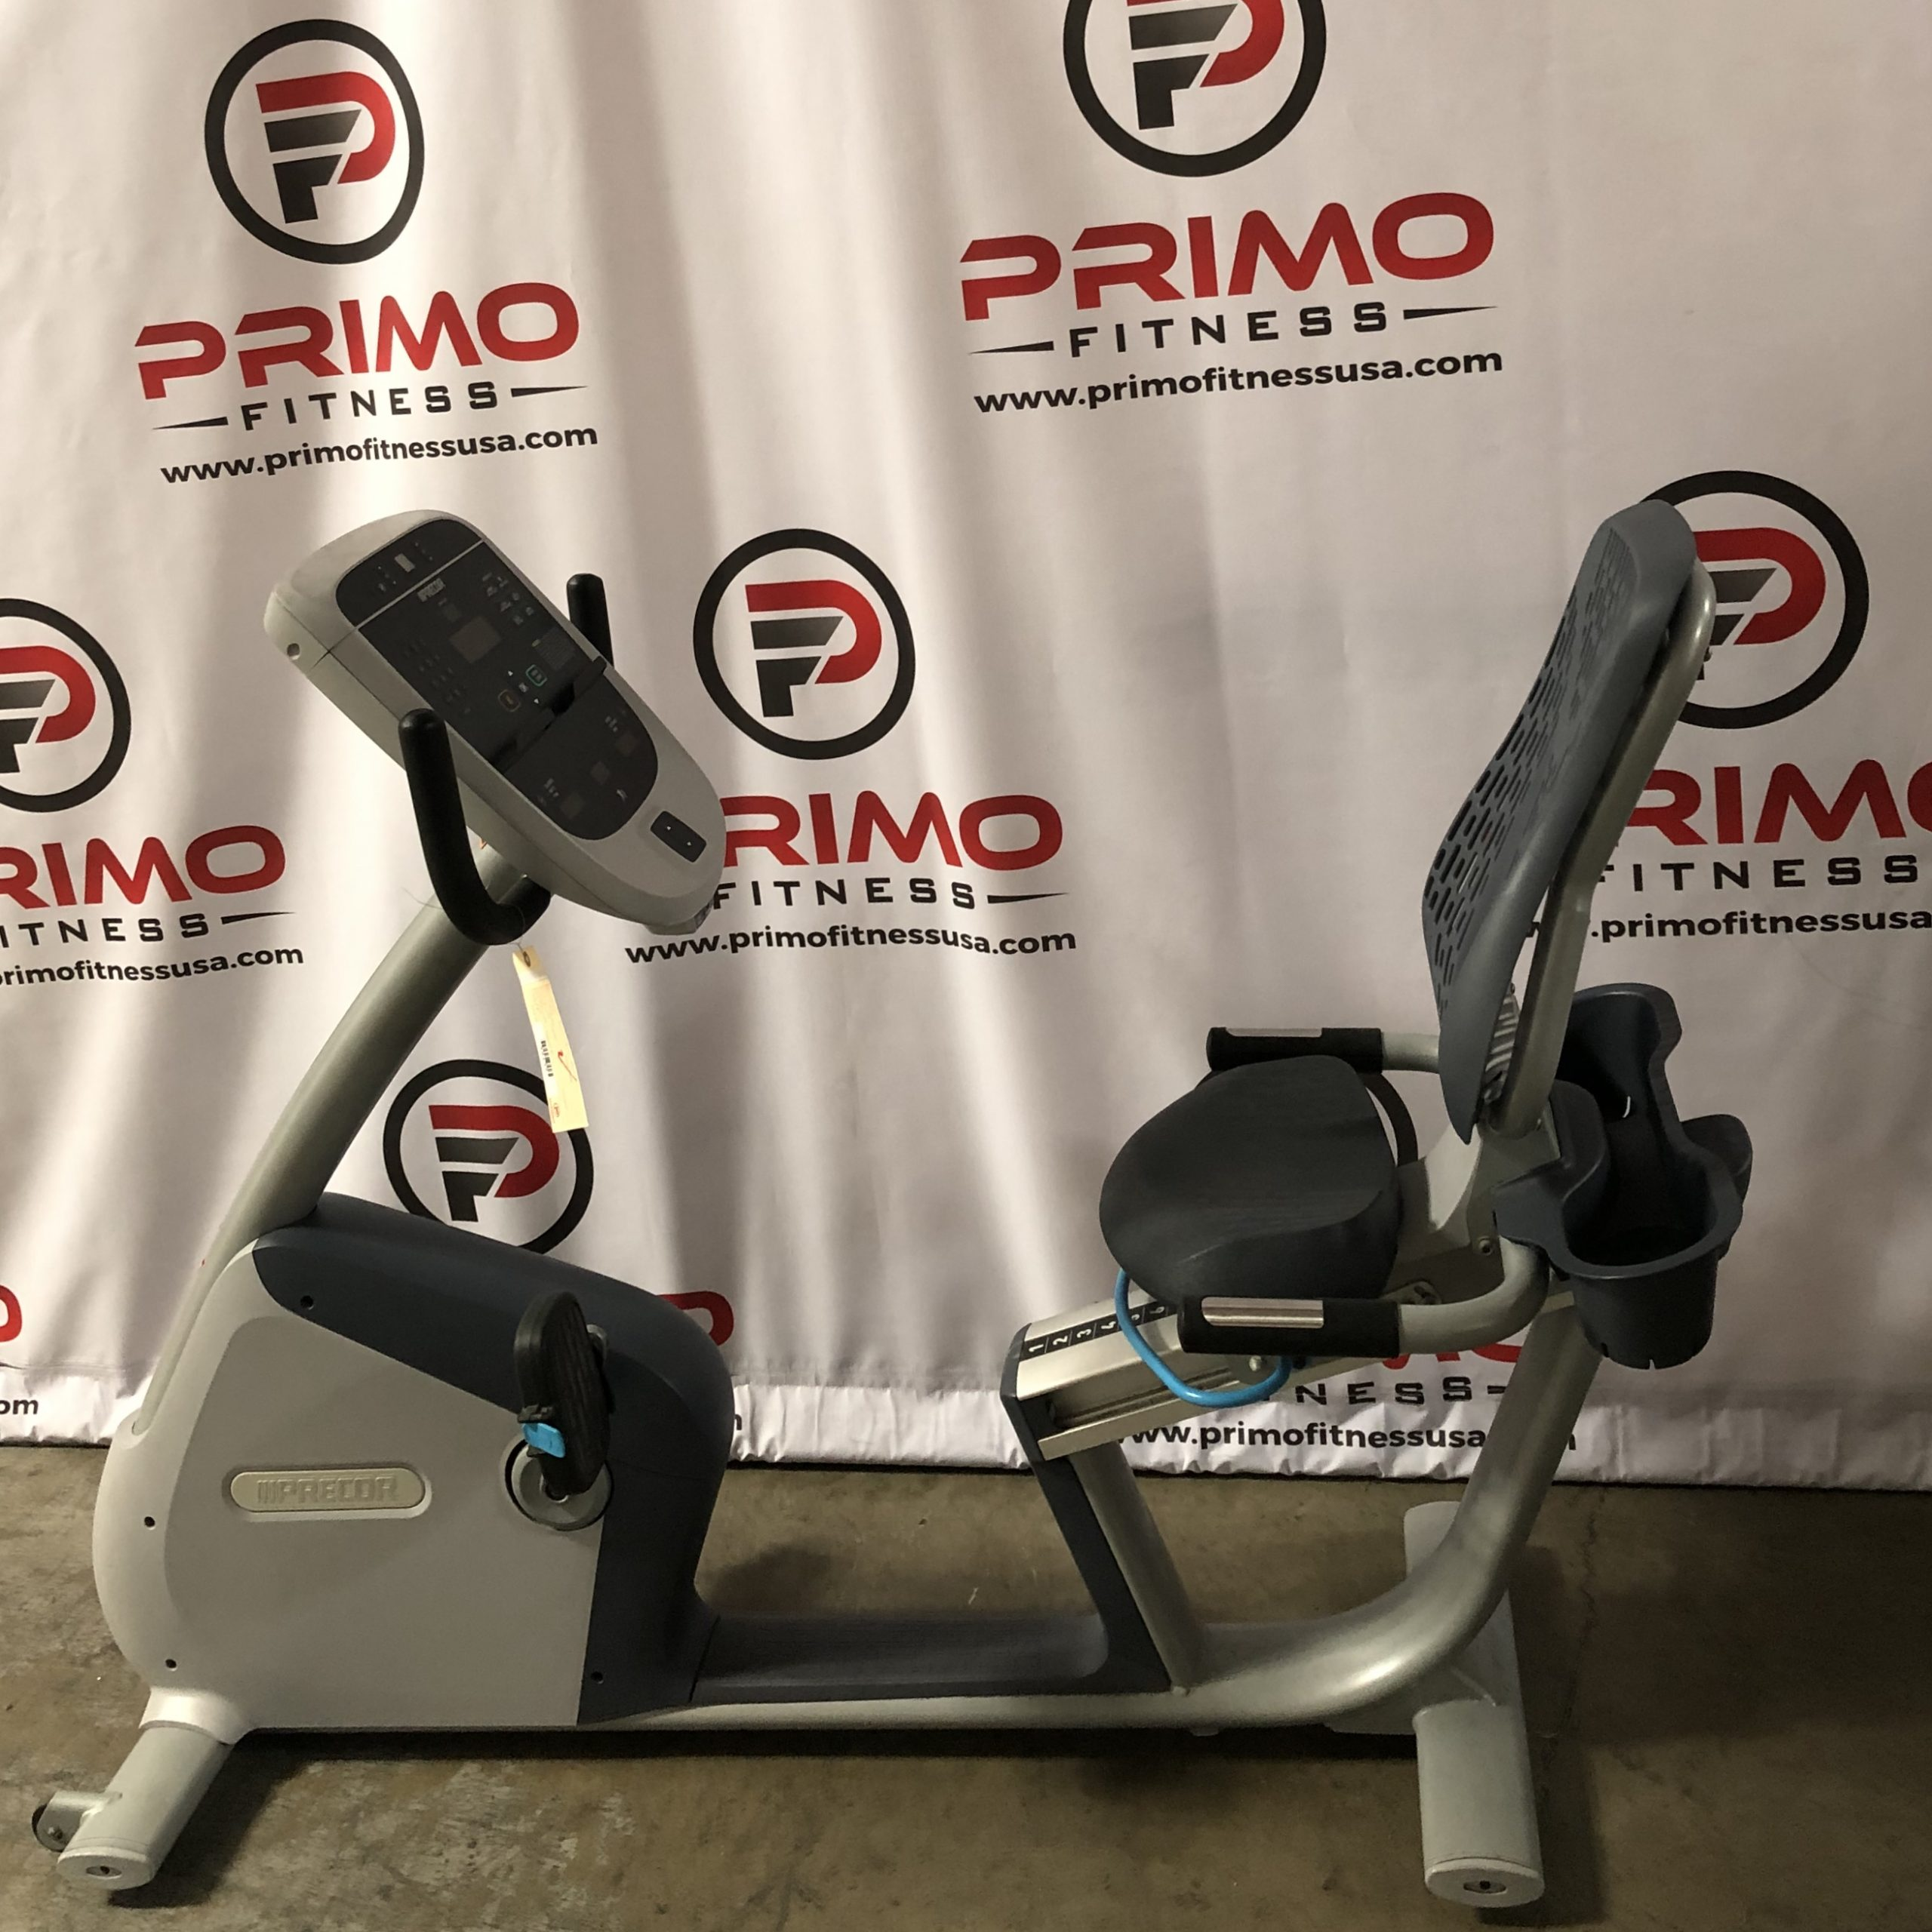 Precor RBK 815 Recumbent Bike P10 Console